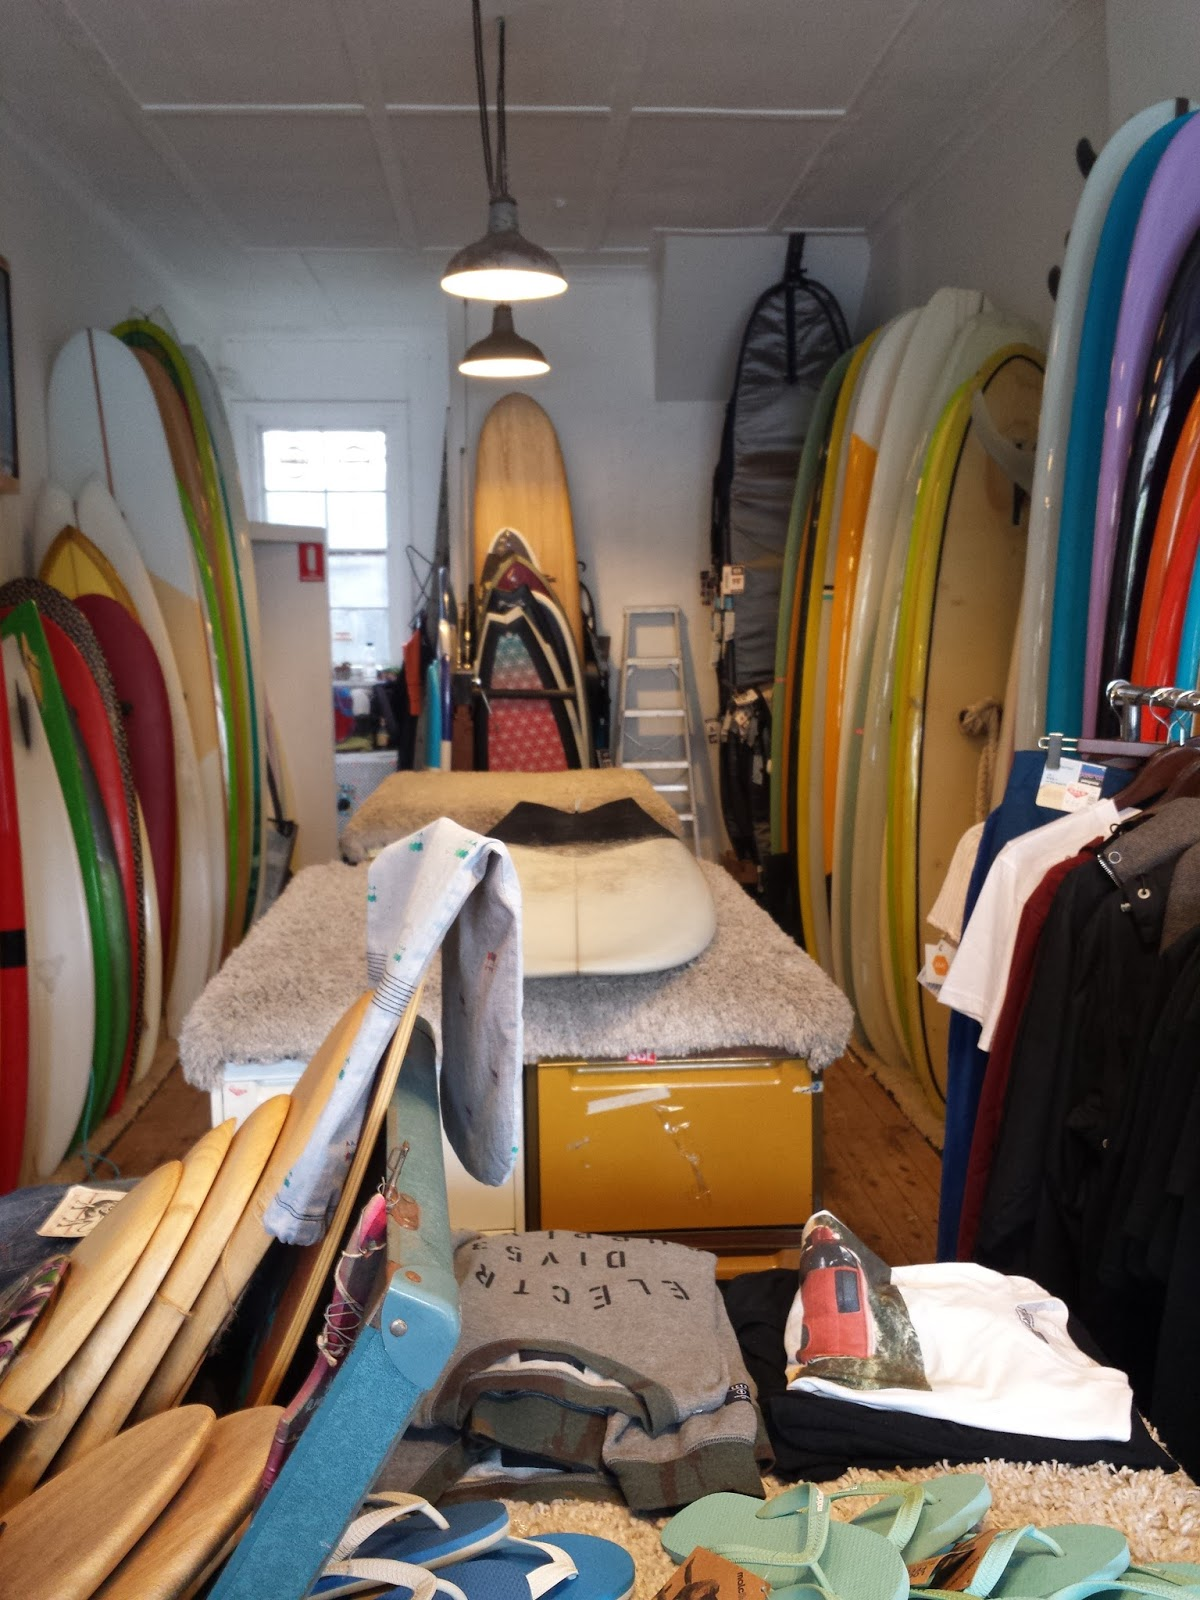 26-03-2016-australia-siebert-surfboards-04